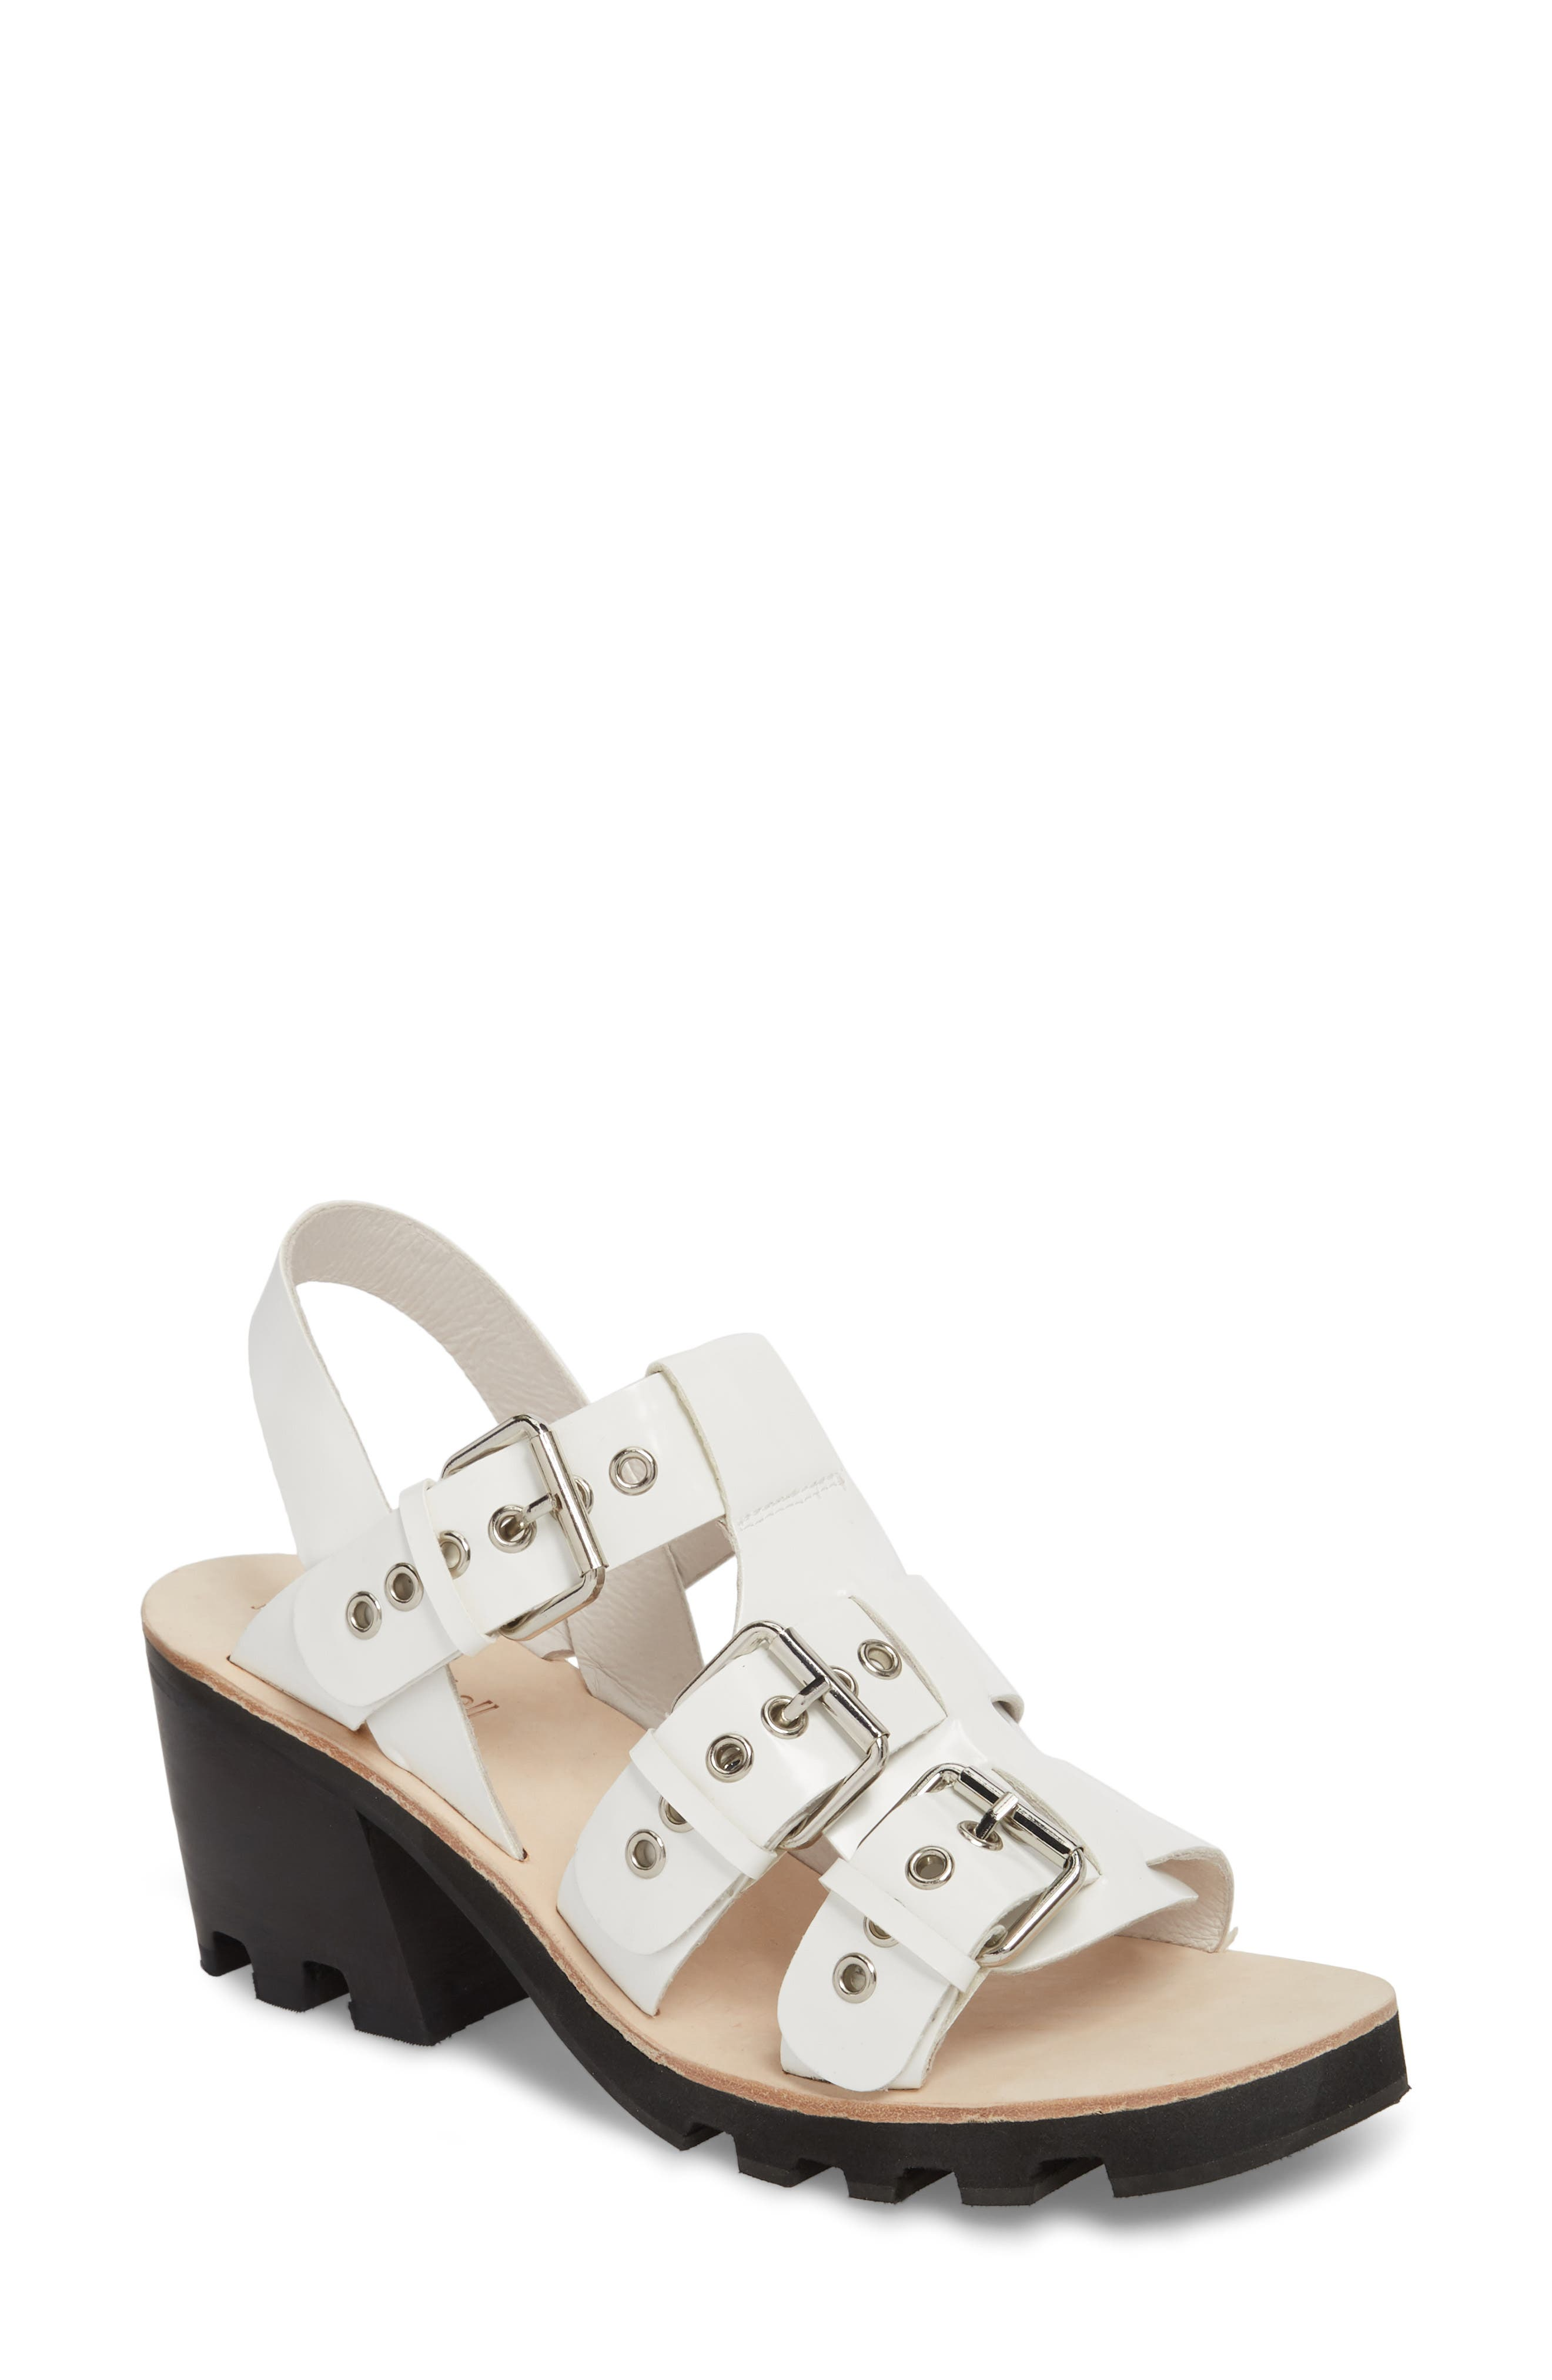 Riveter Lugged Buckle Sandal,                         Main,                         color, 100